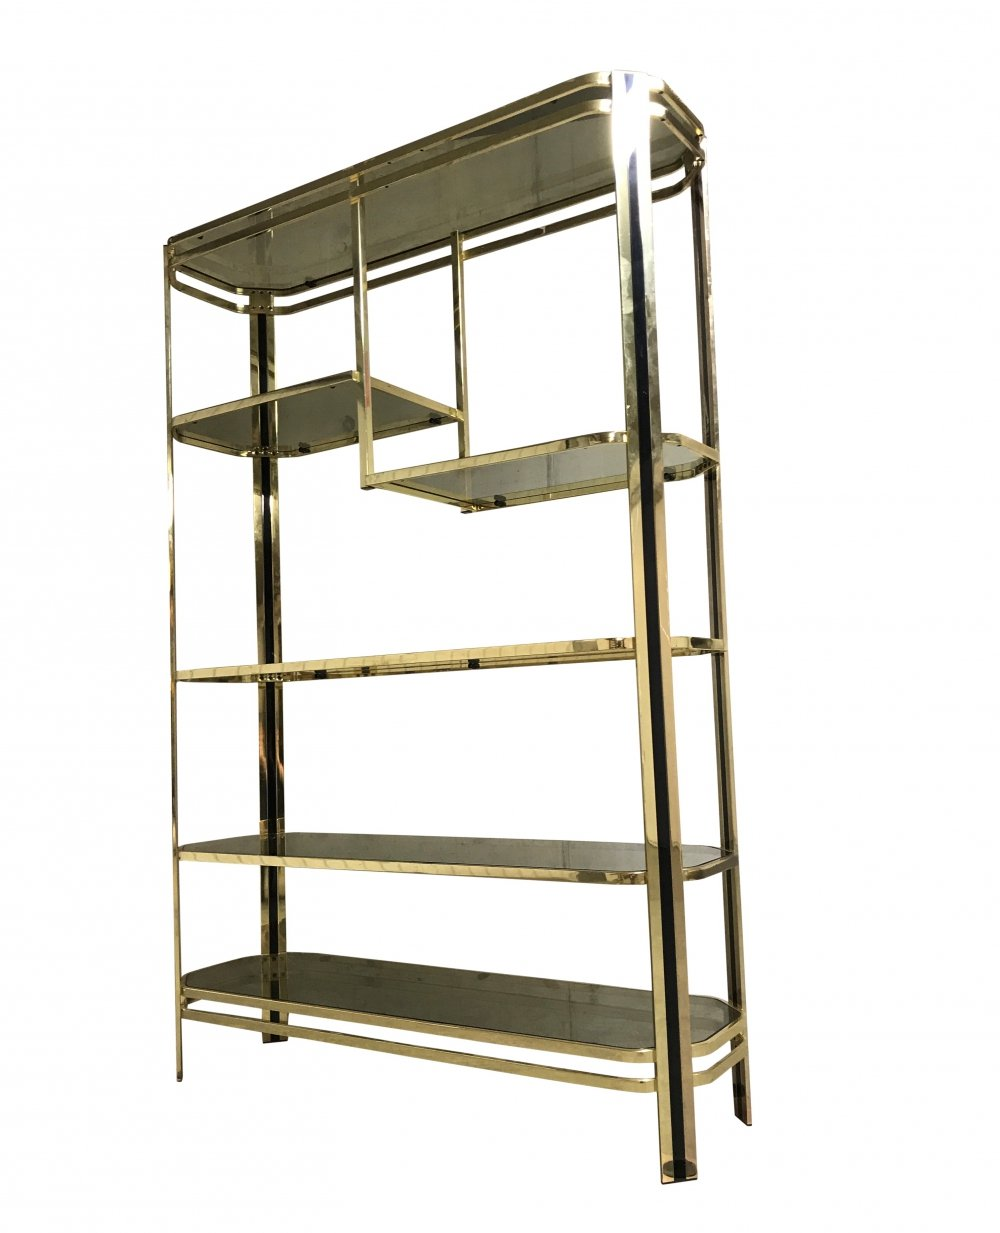 Vintage brass & smoked glass shelving unit, 1970s